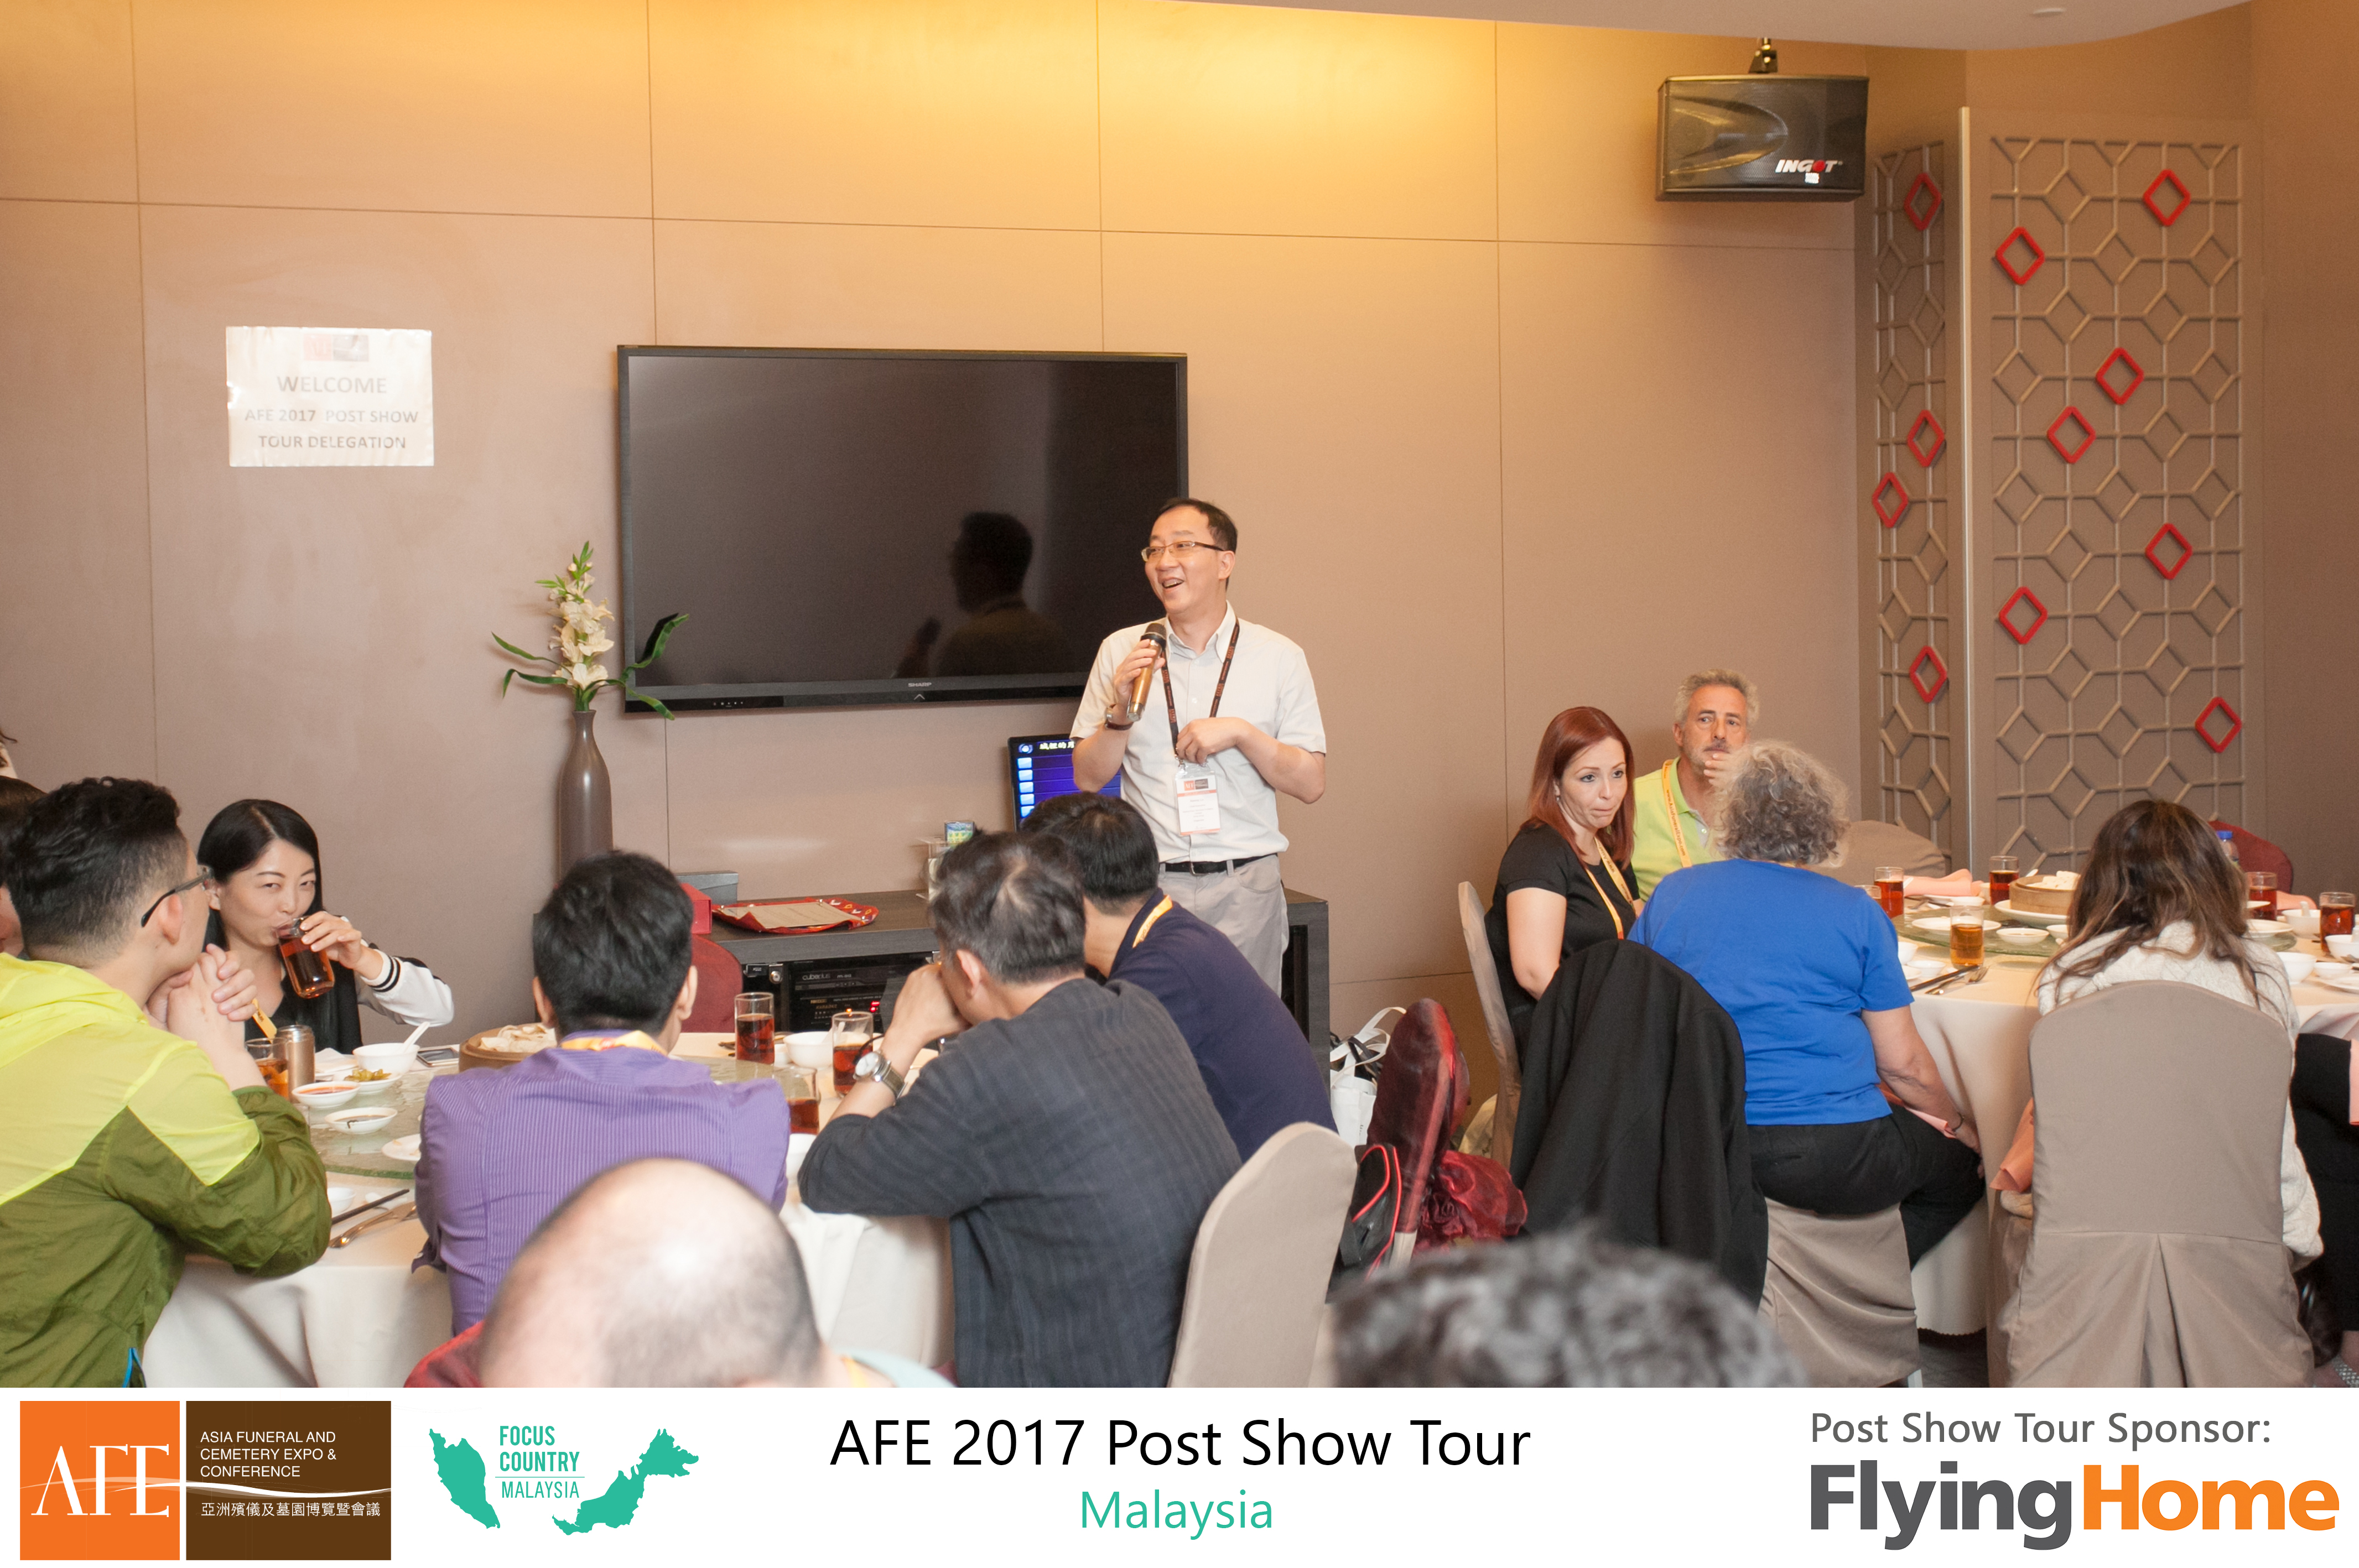 AFE Post Show Tour 2017 Day 1 - 12